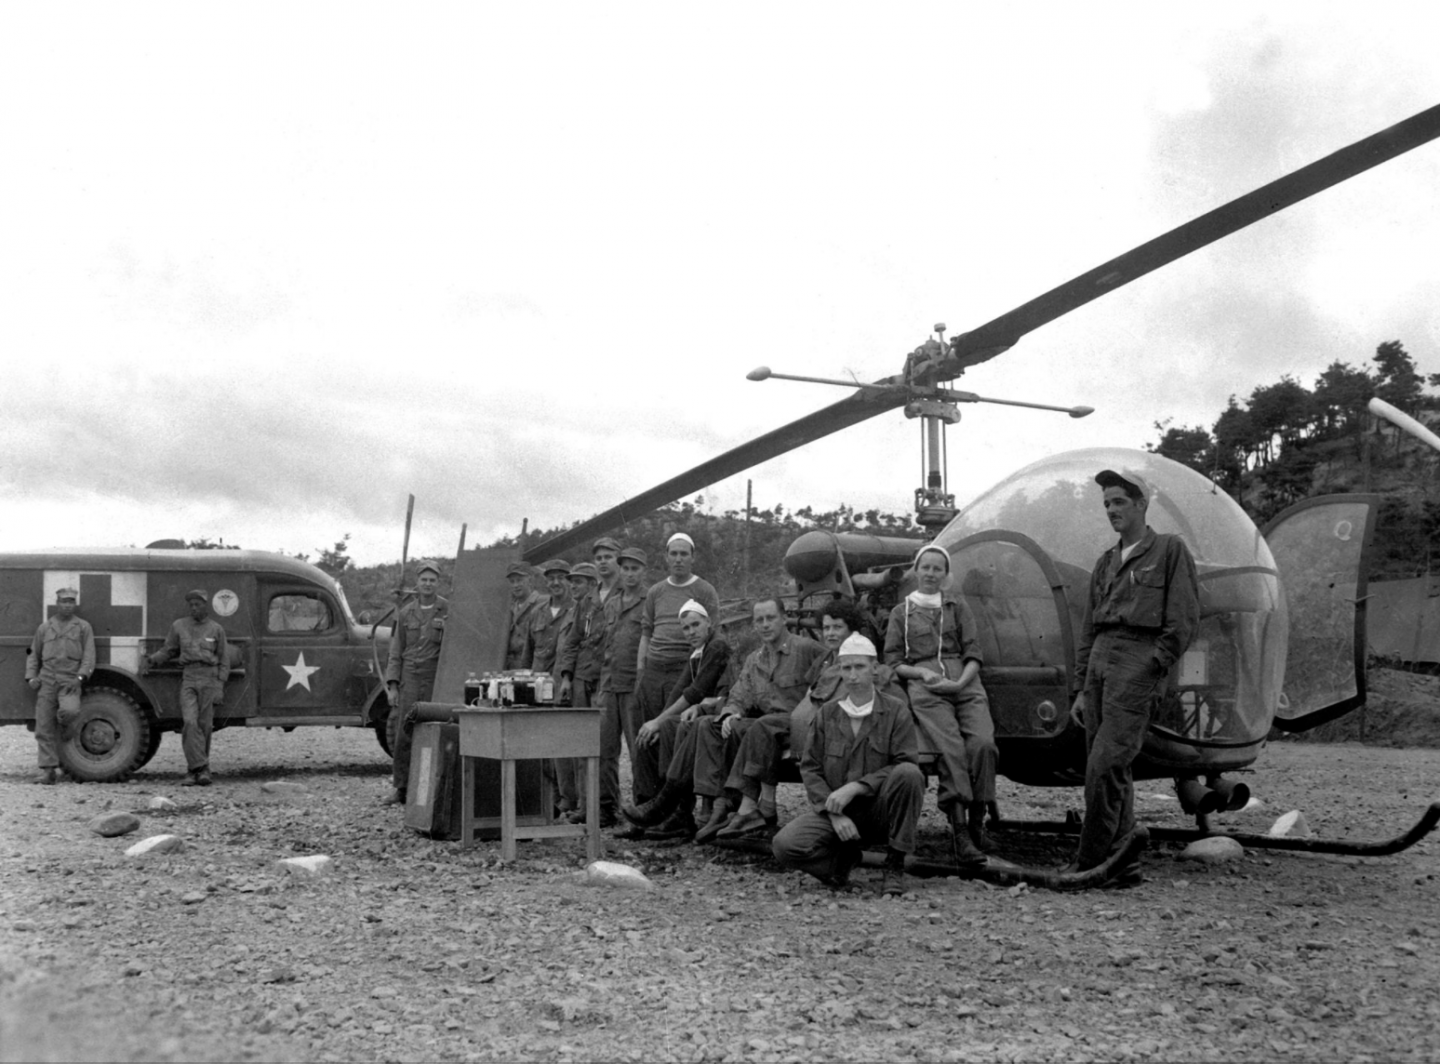 MASH Unit doctors pose with Jeep and helicopter during Korean War